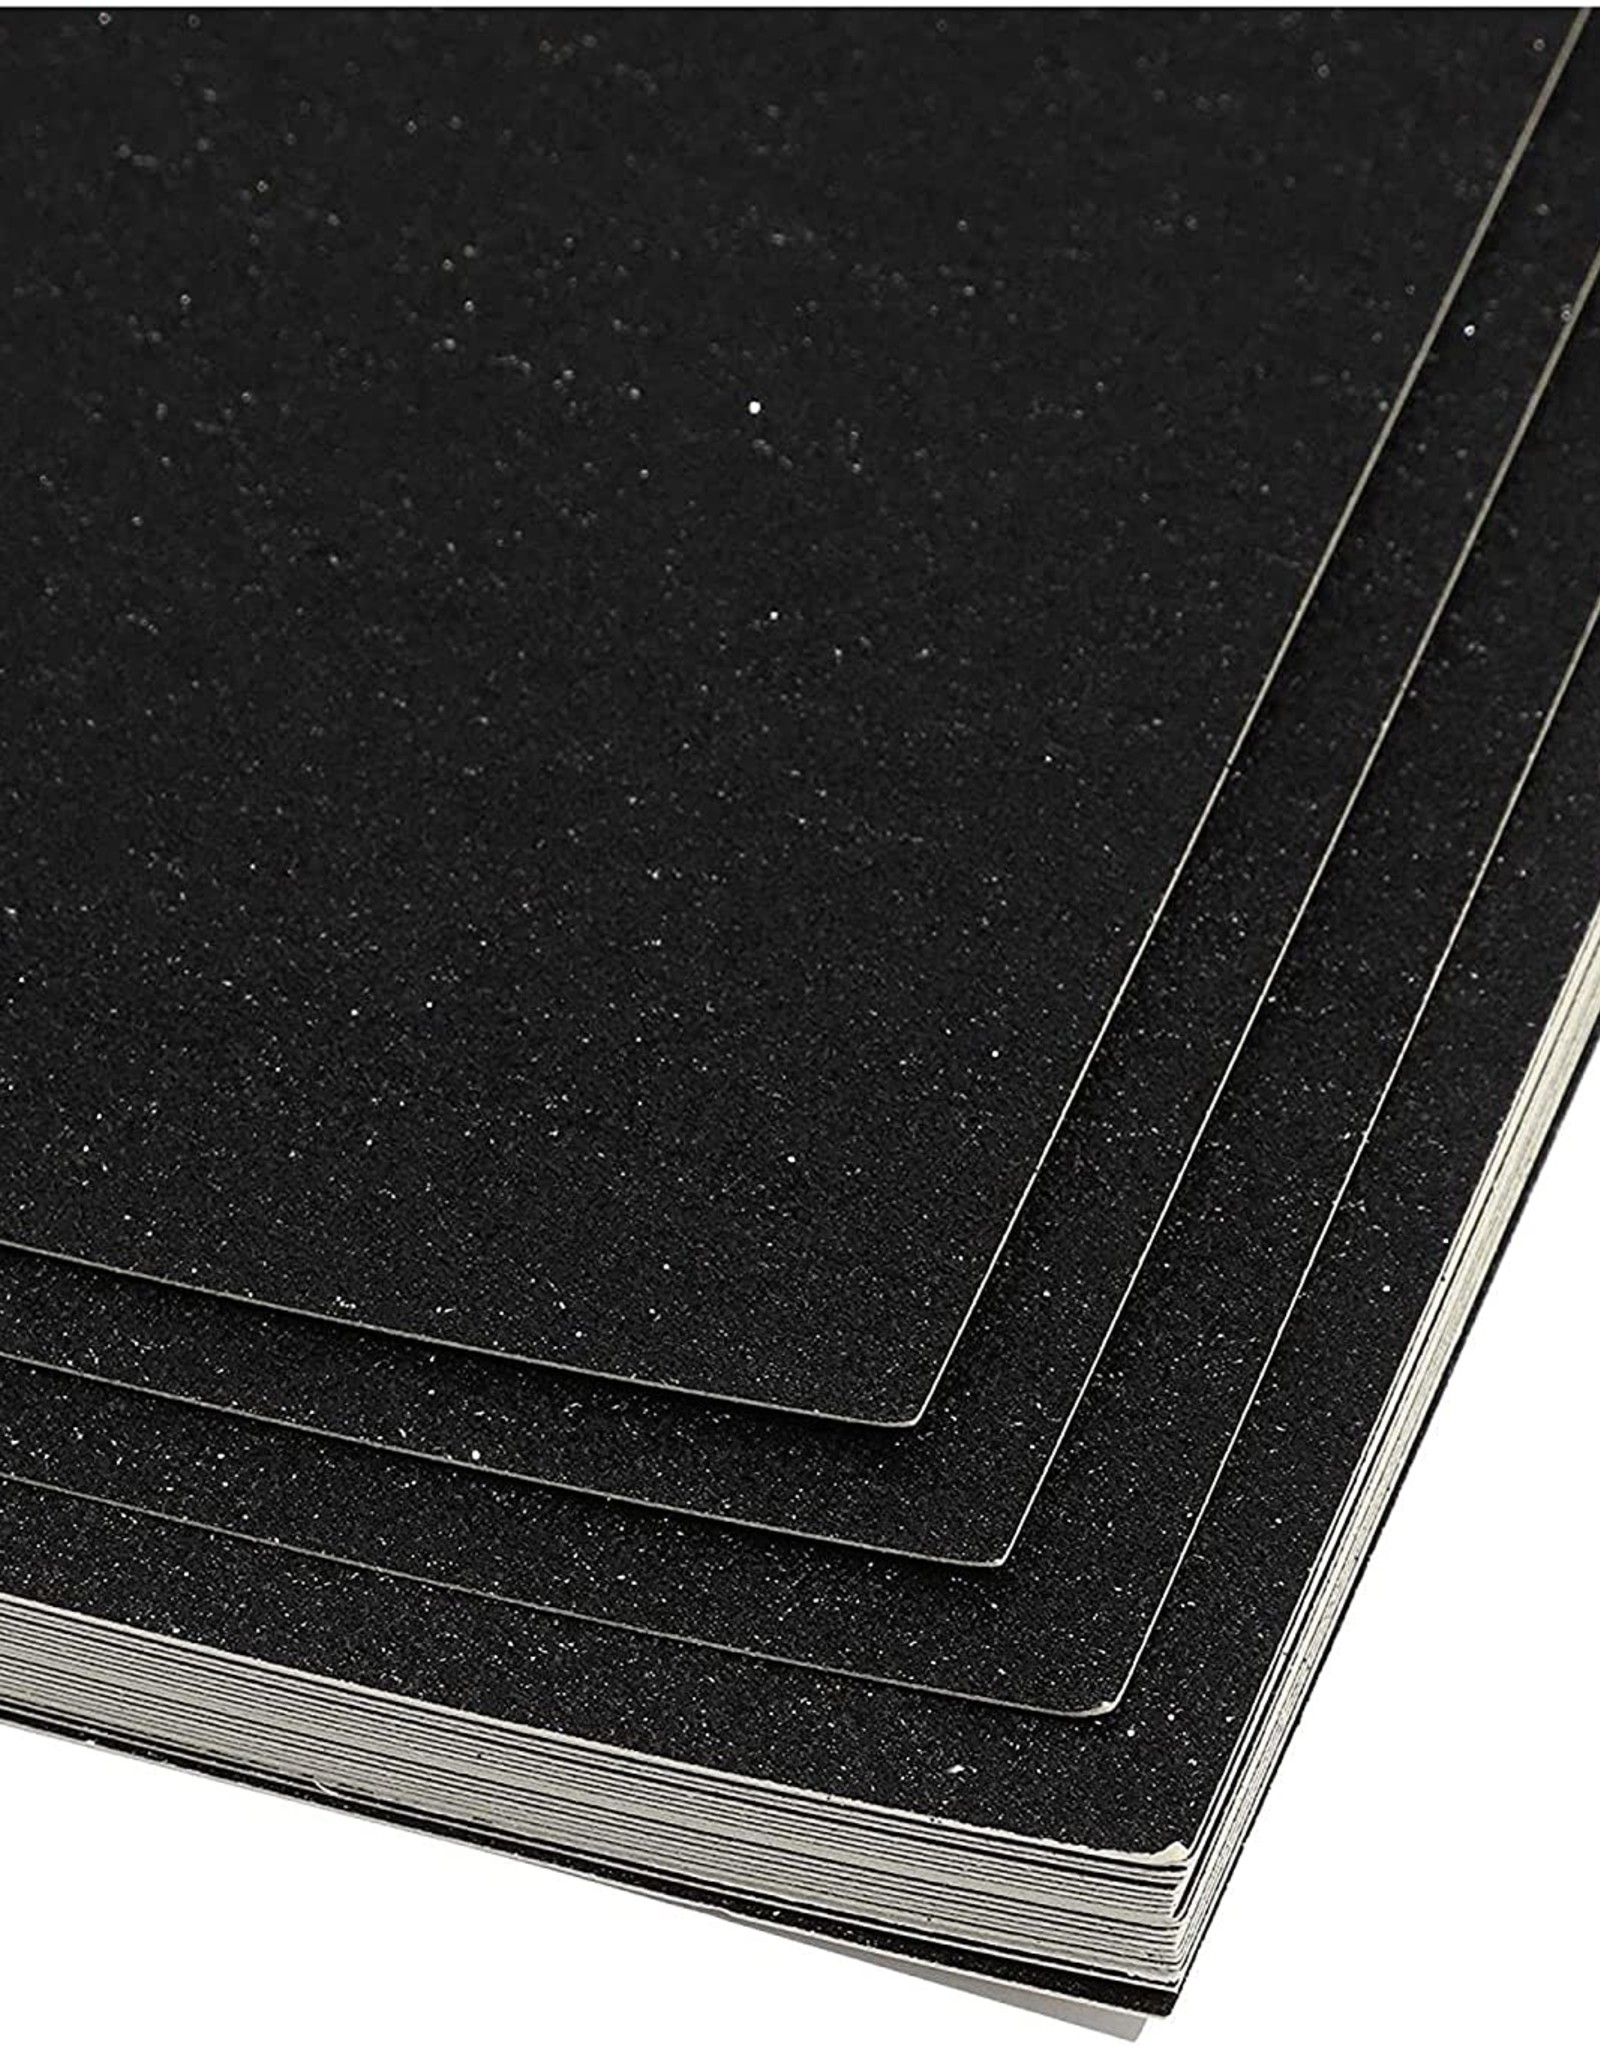 Glitter Card Stock 360 GSM 19 5/8 x 27 1/2 Inches Black